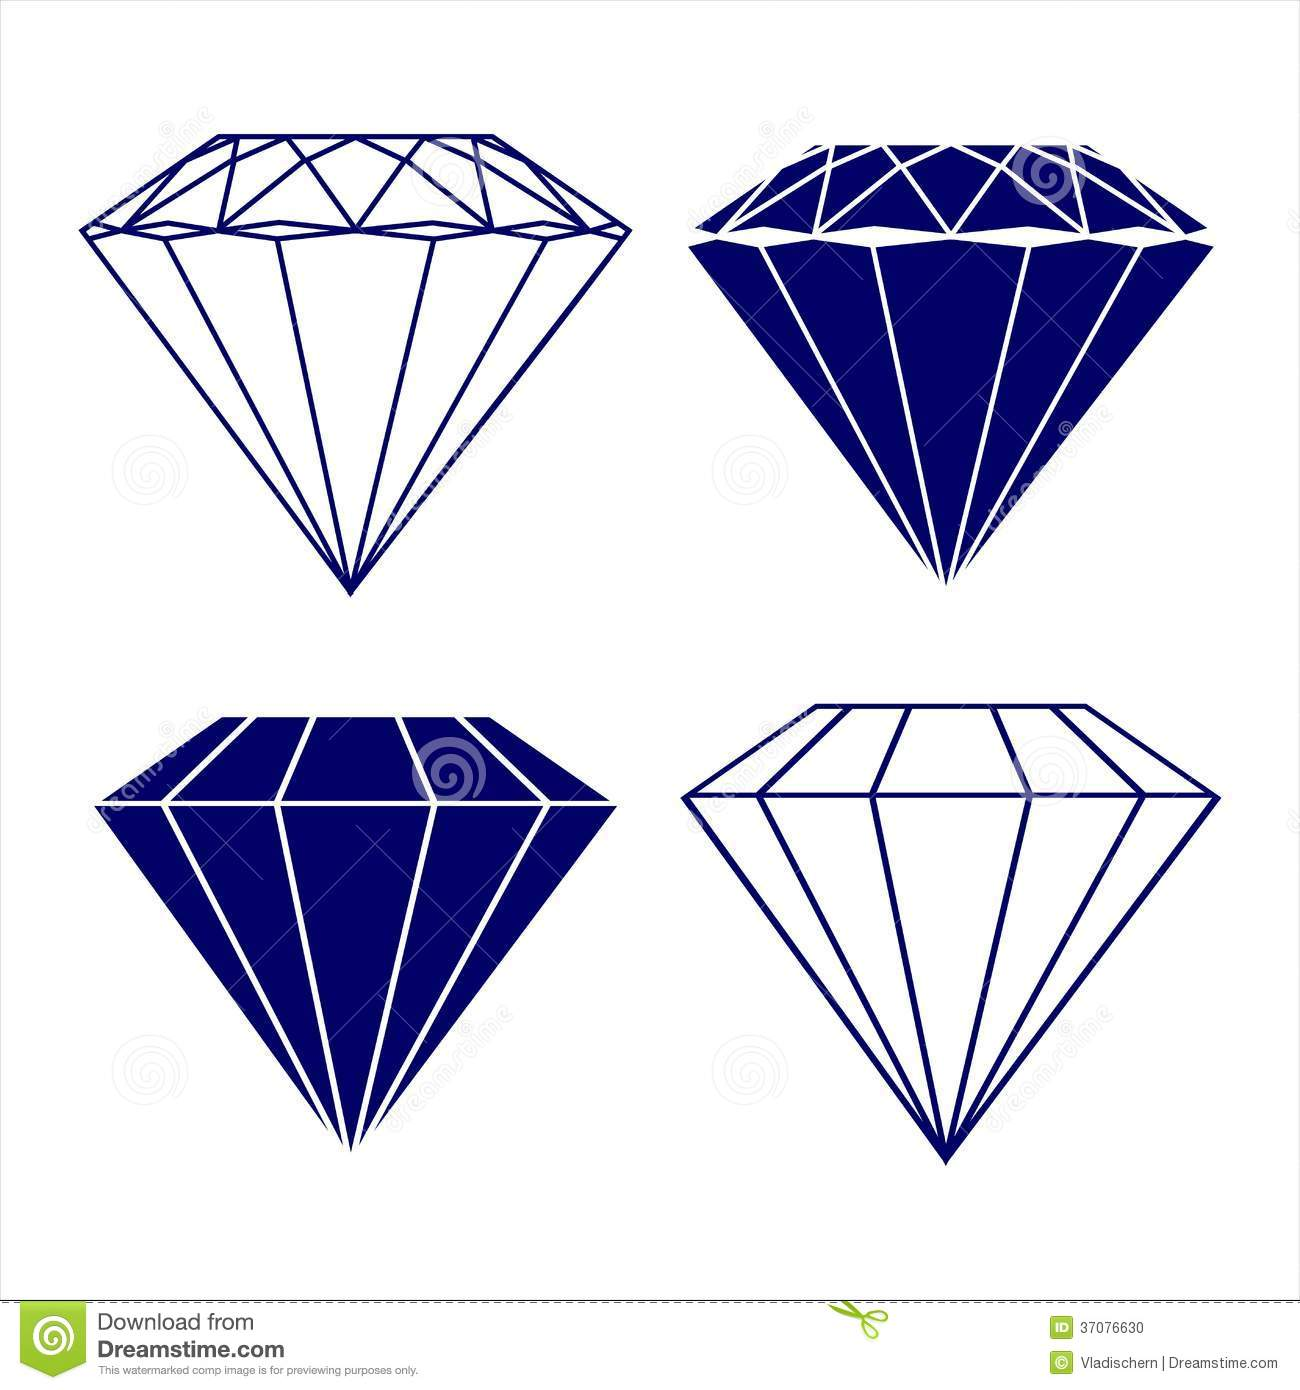 Diamond Symbols Vector Illustration Stock Photo - Image: 37076630